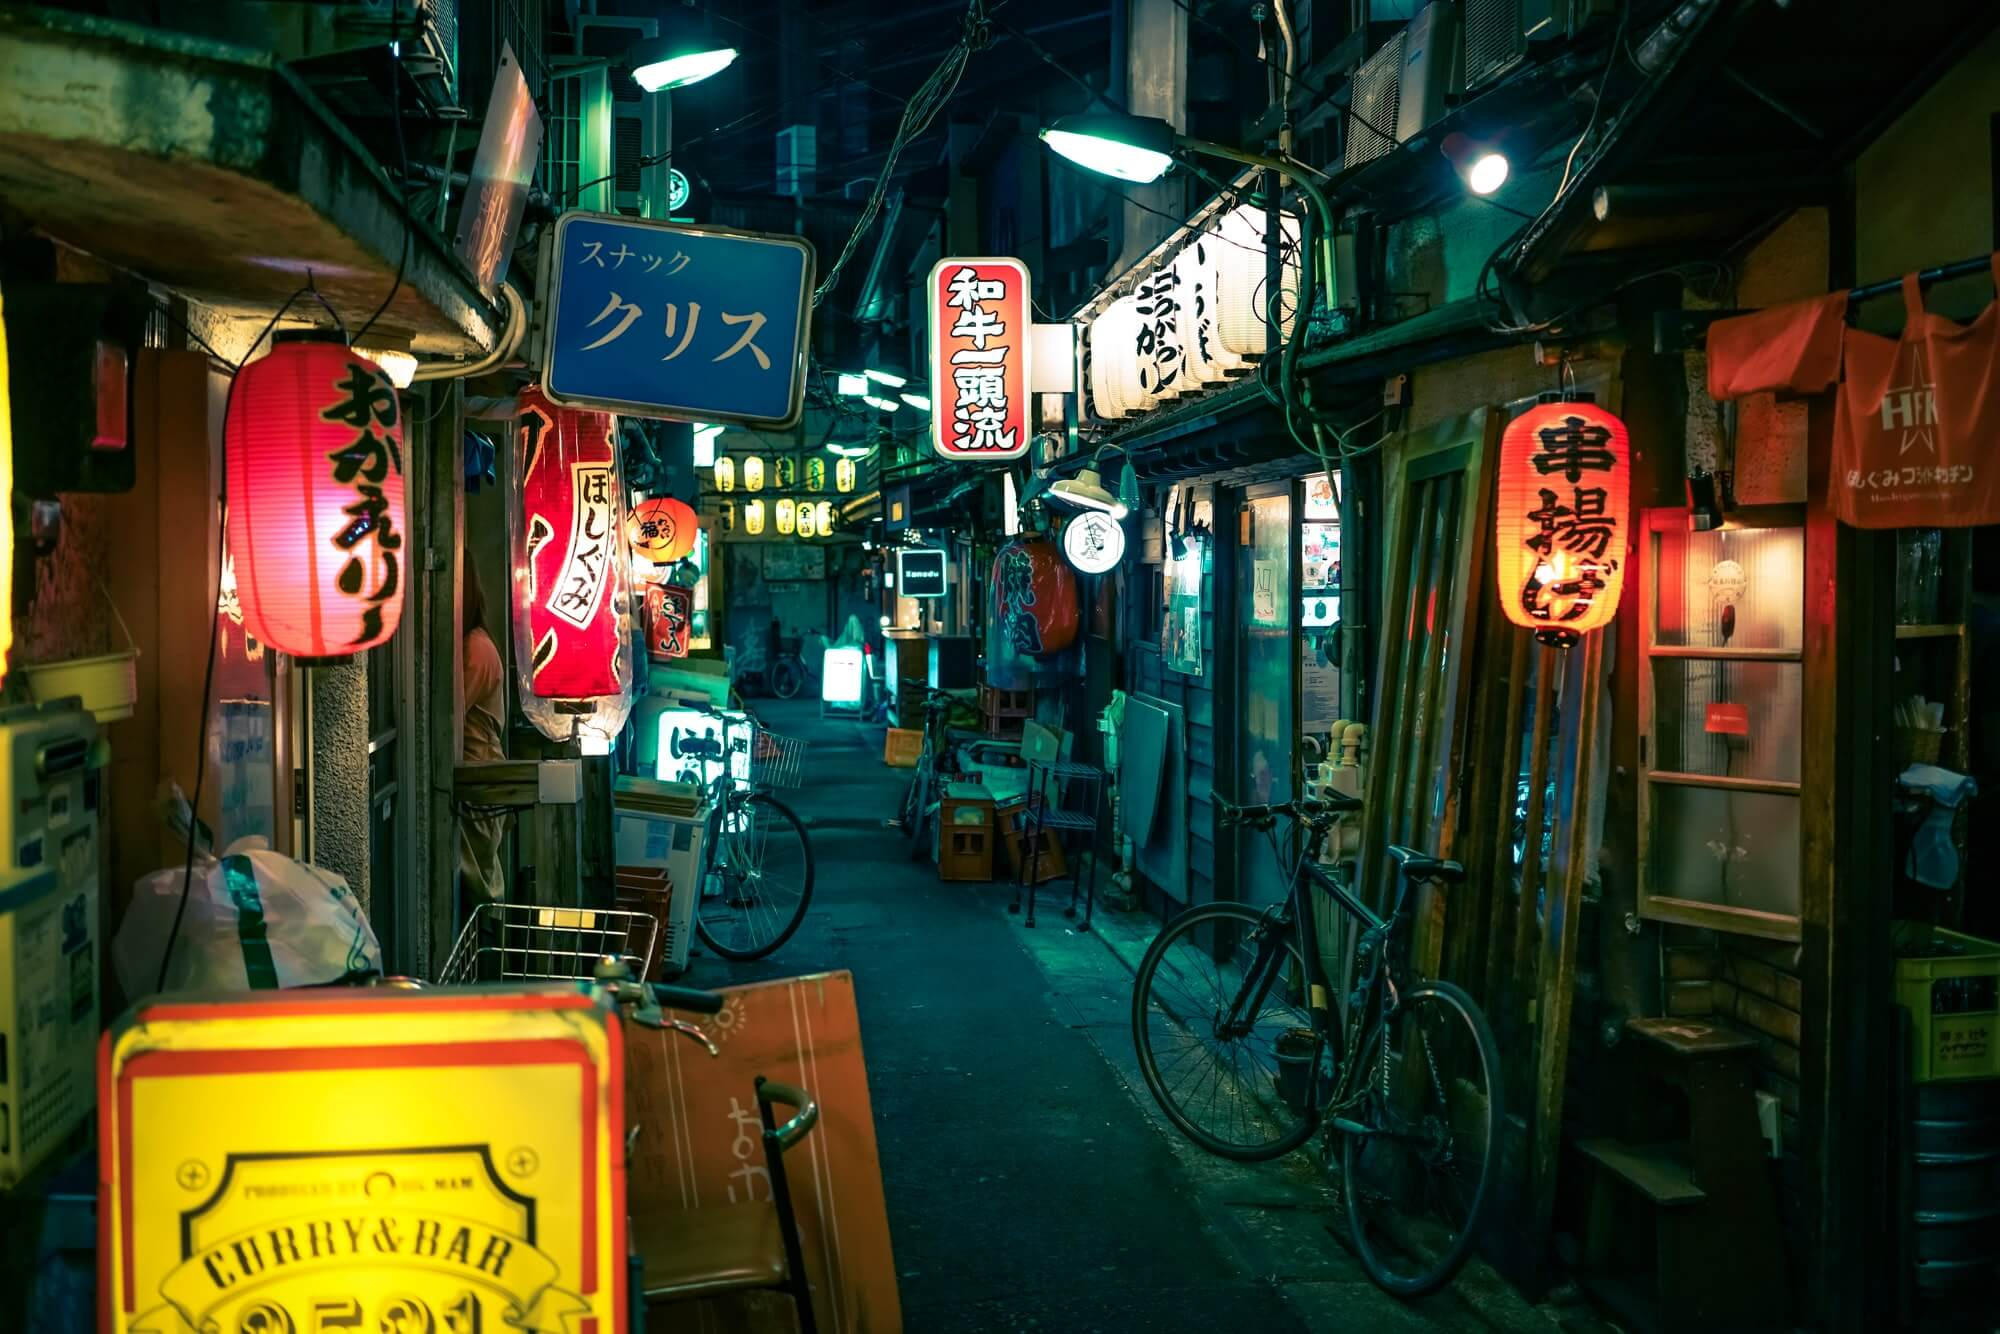 A Japanese street signs at night